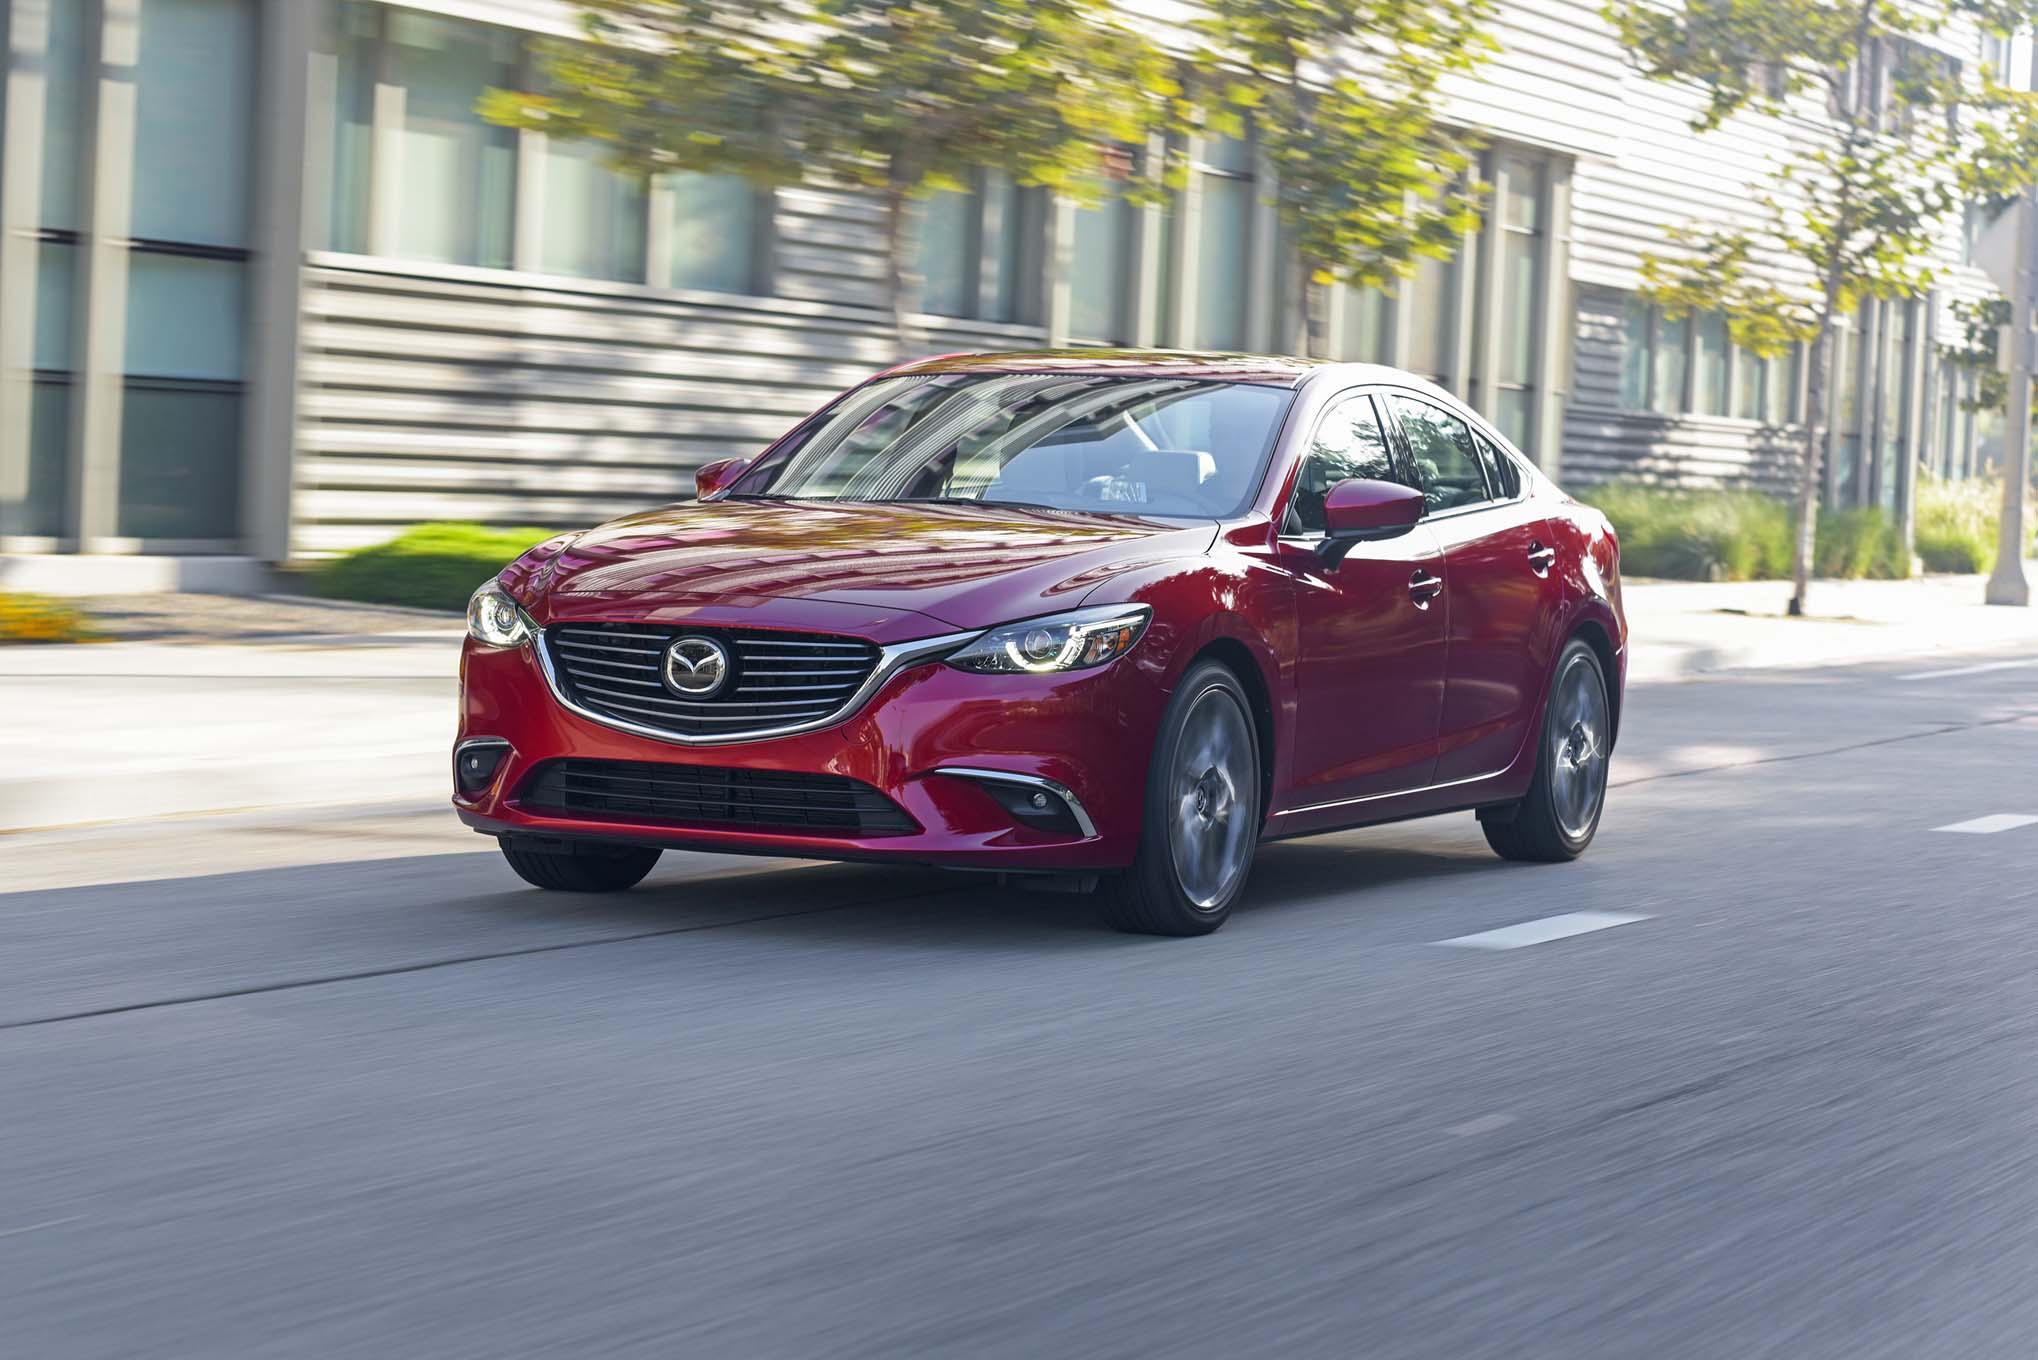 2017 Mazda6 Grand Touring First Drive Review | Automobile Magazine